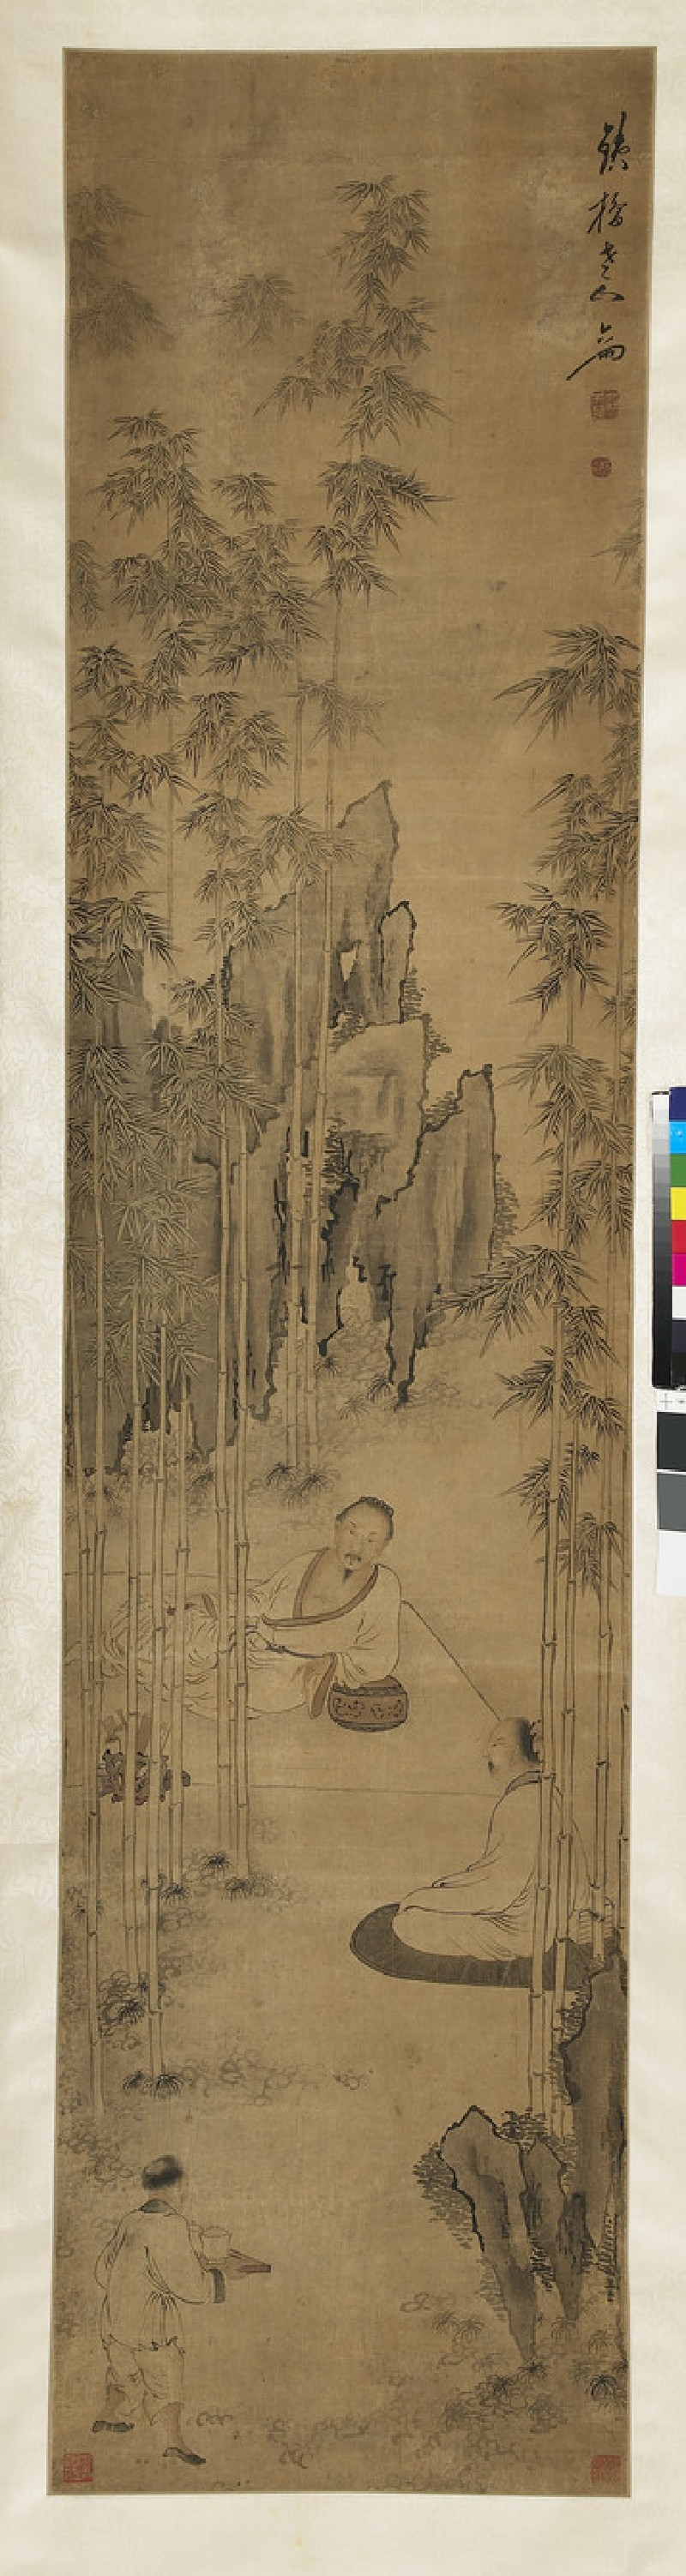 Drinking at leisure in the bamboo garden (front            )